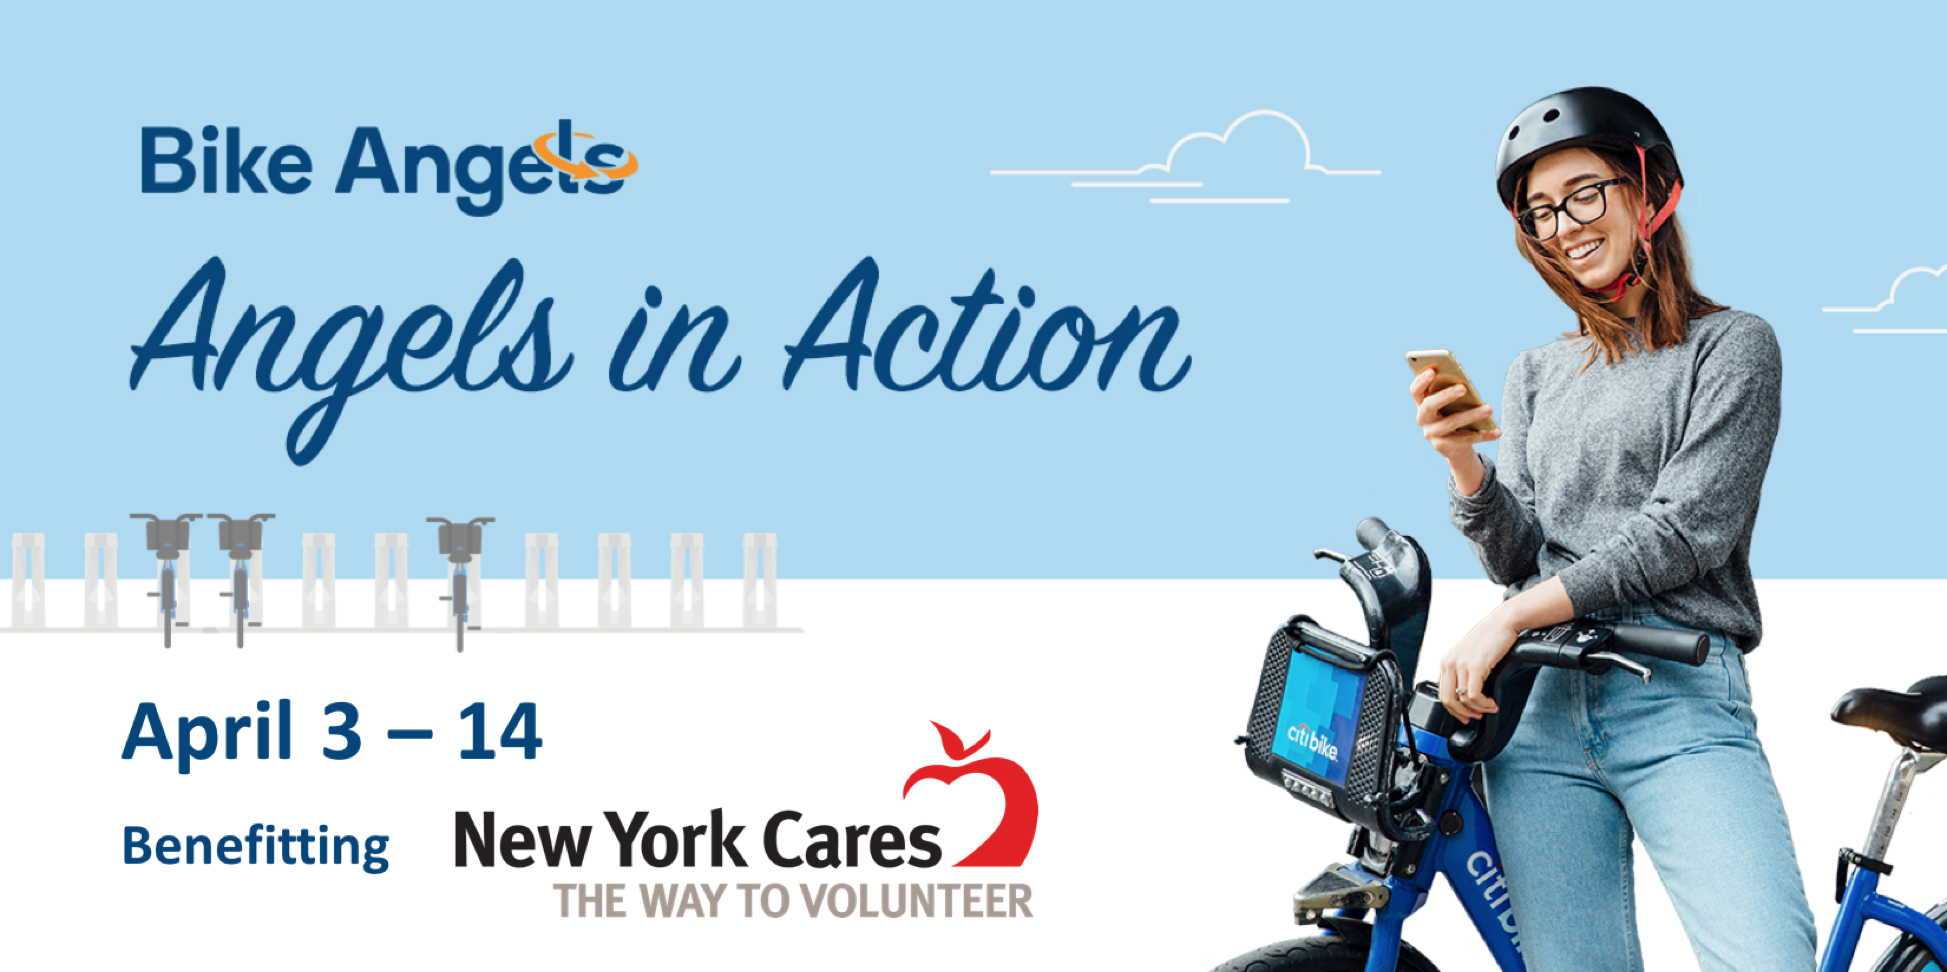 Bike Angels X Ny Cares